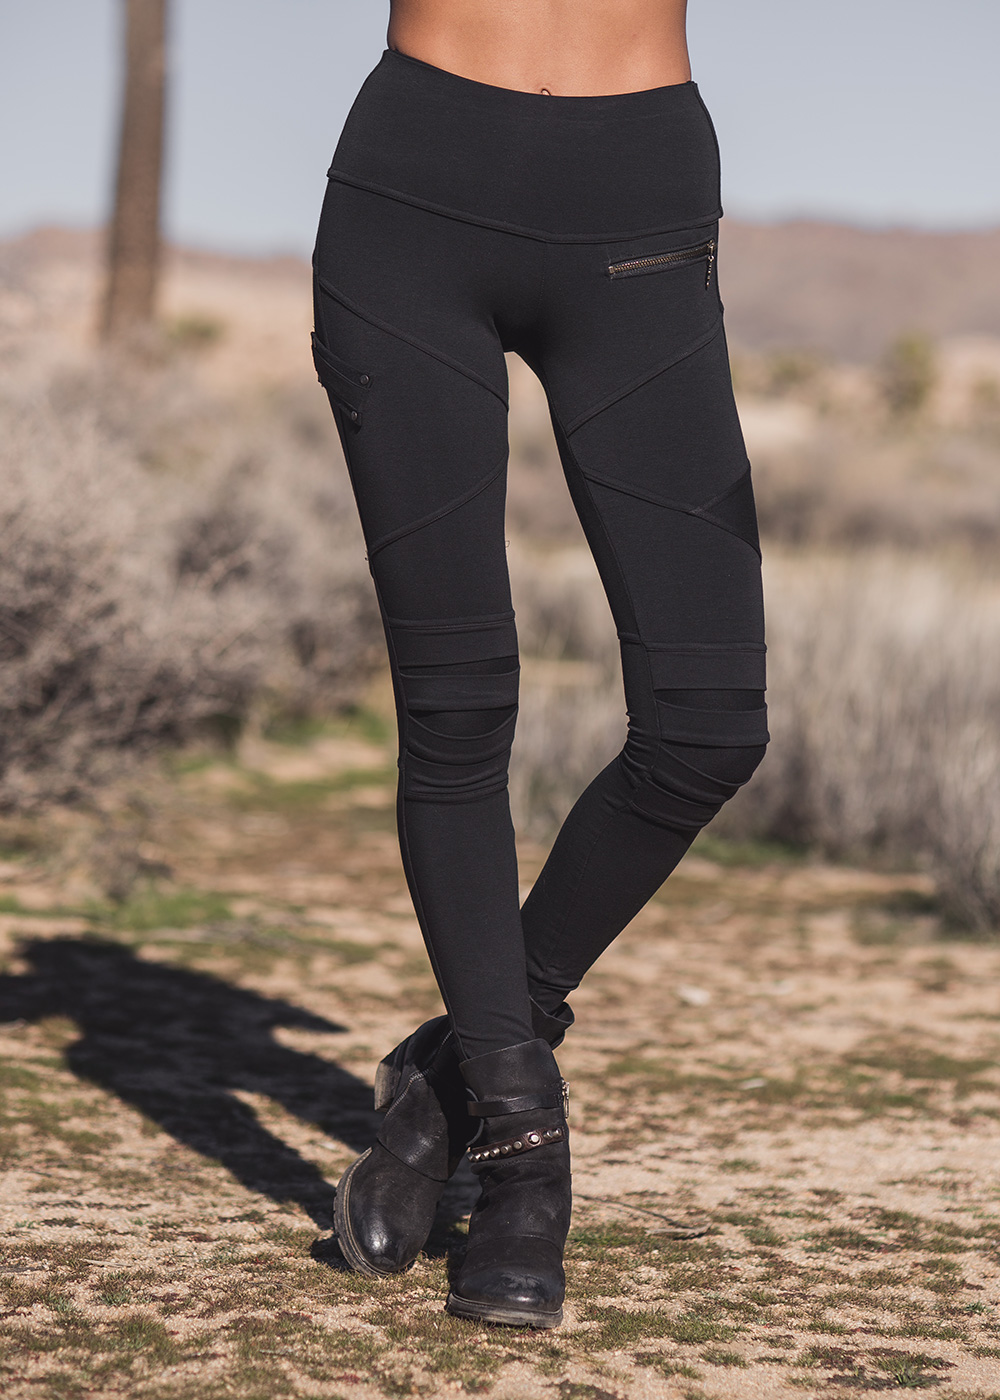 Apocalypse Leggings in Organic Cotton & Bamboo - Nomads Hemp Wear